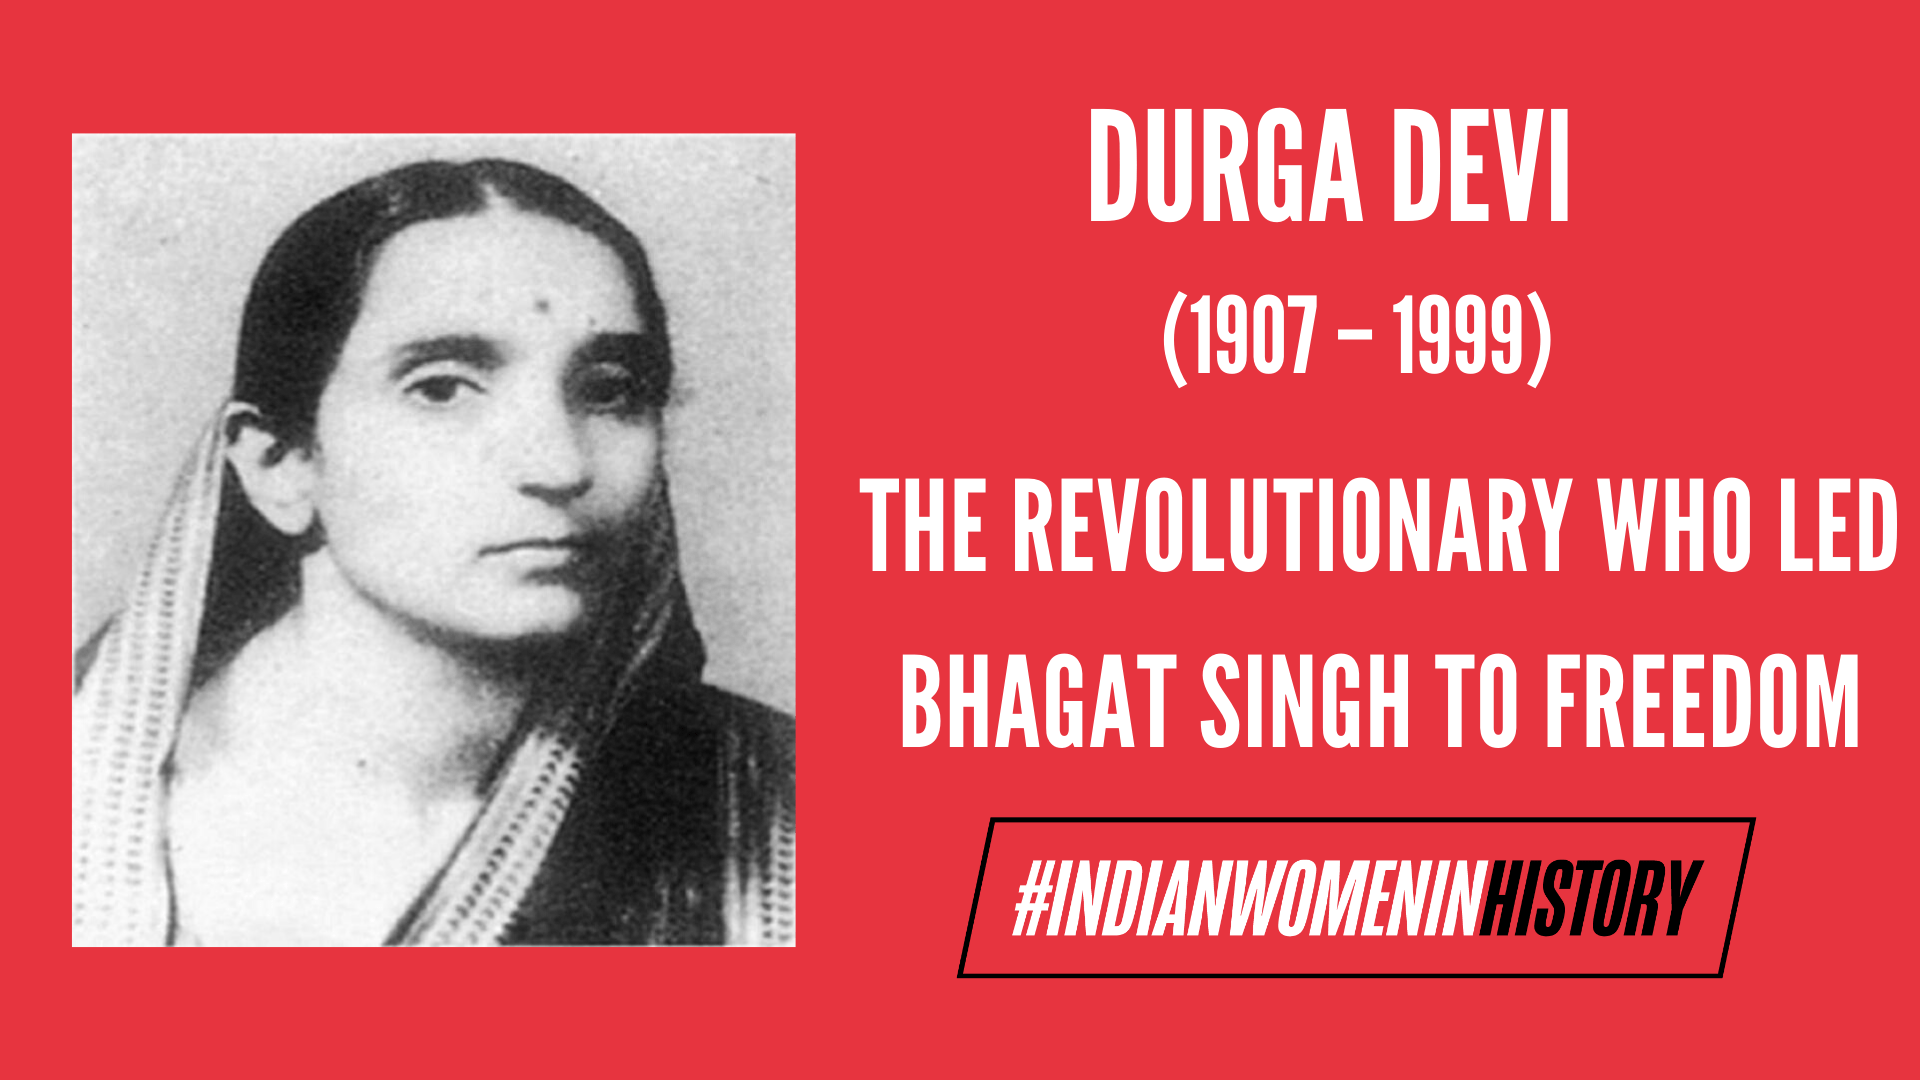 Like many women revolutionaries of her time, Durga Devi fought not only to repel the autocratic government from her homeland but shape the route to women's participation in the freedom struggle.